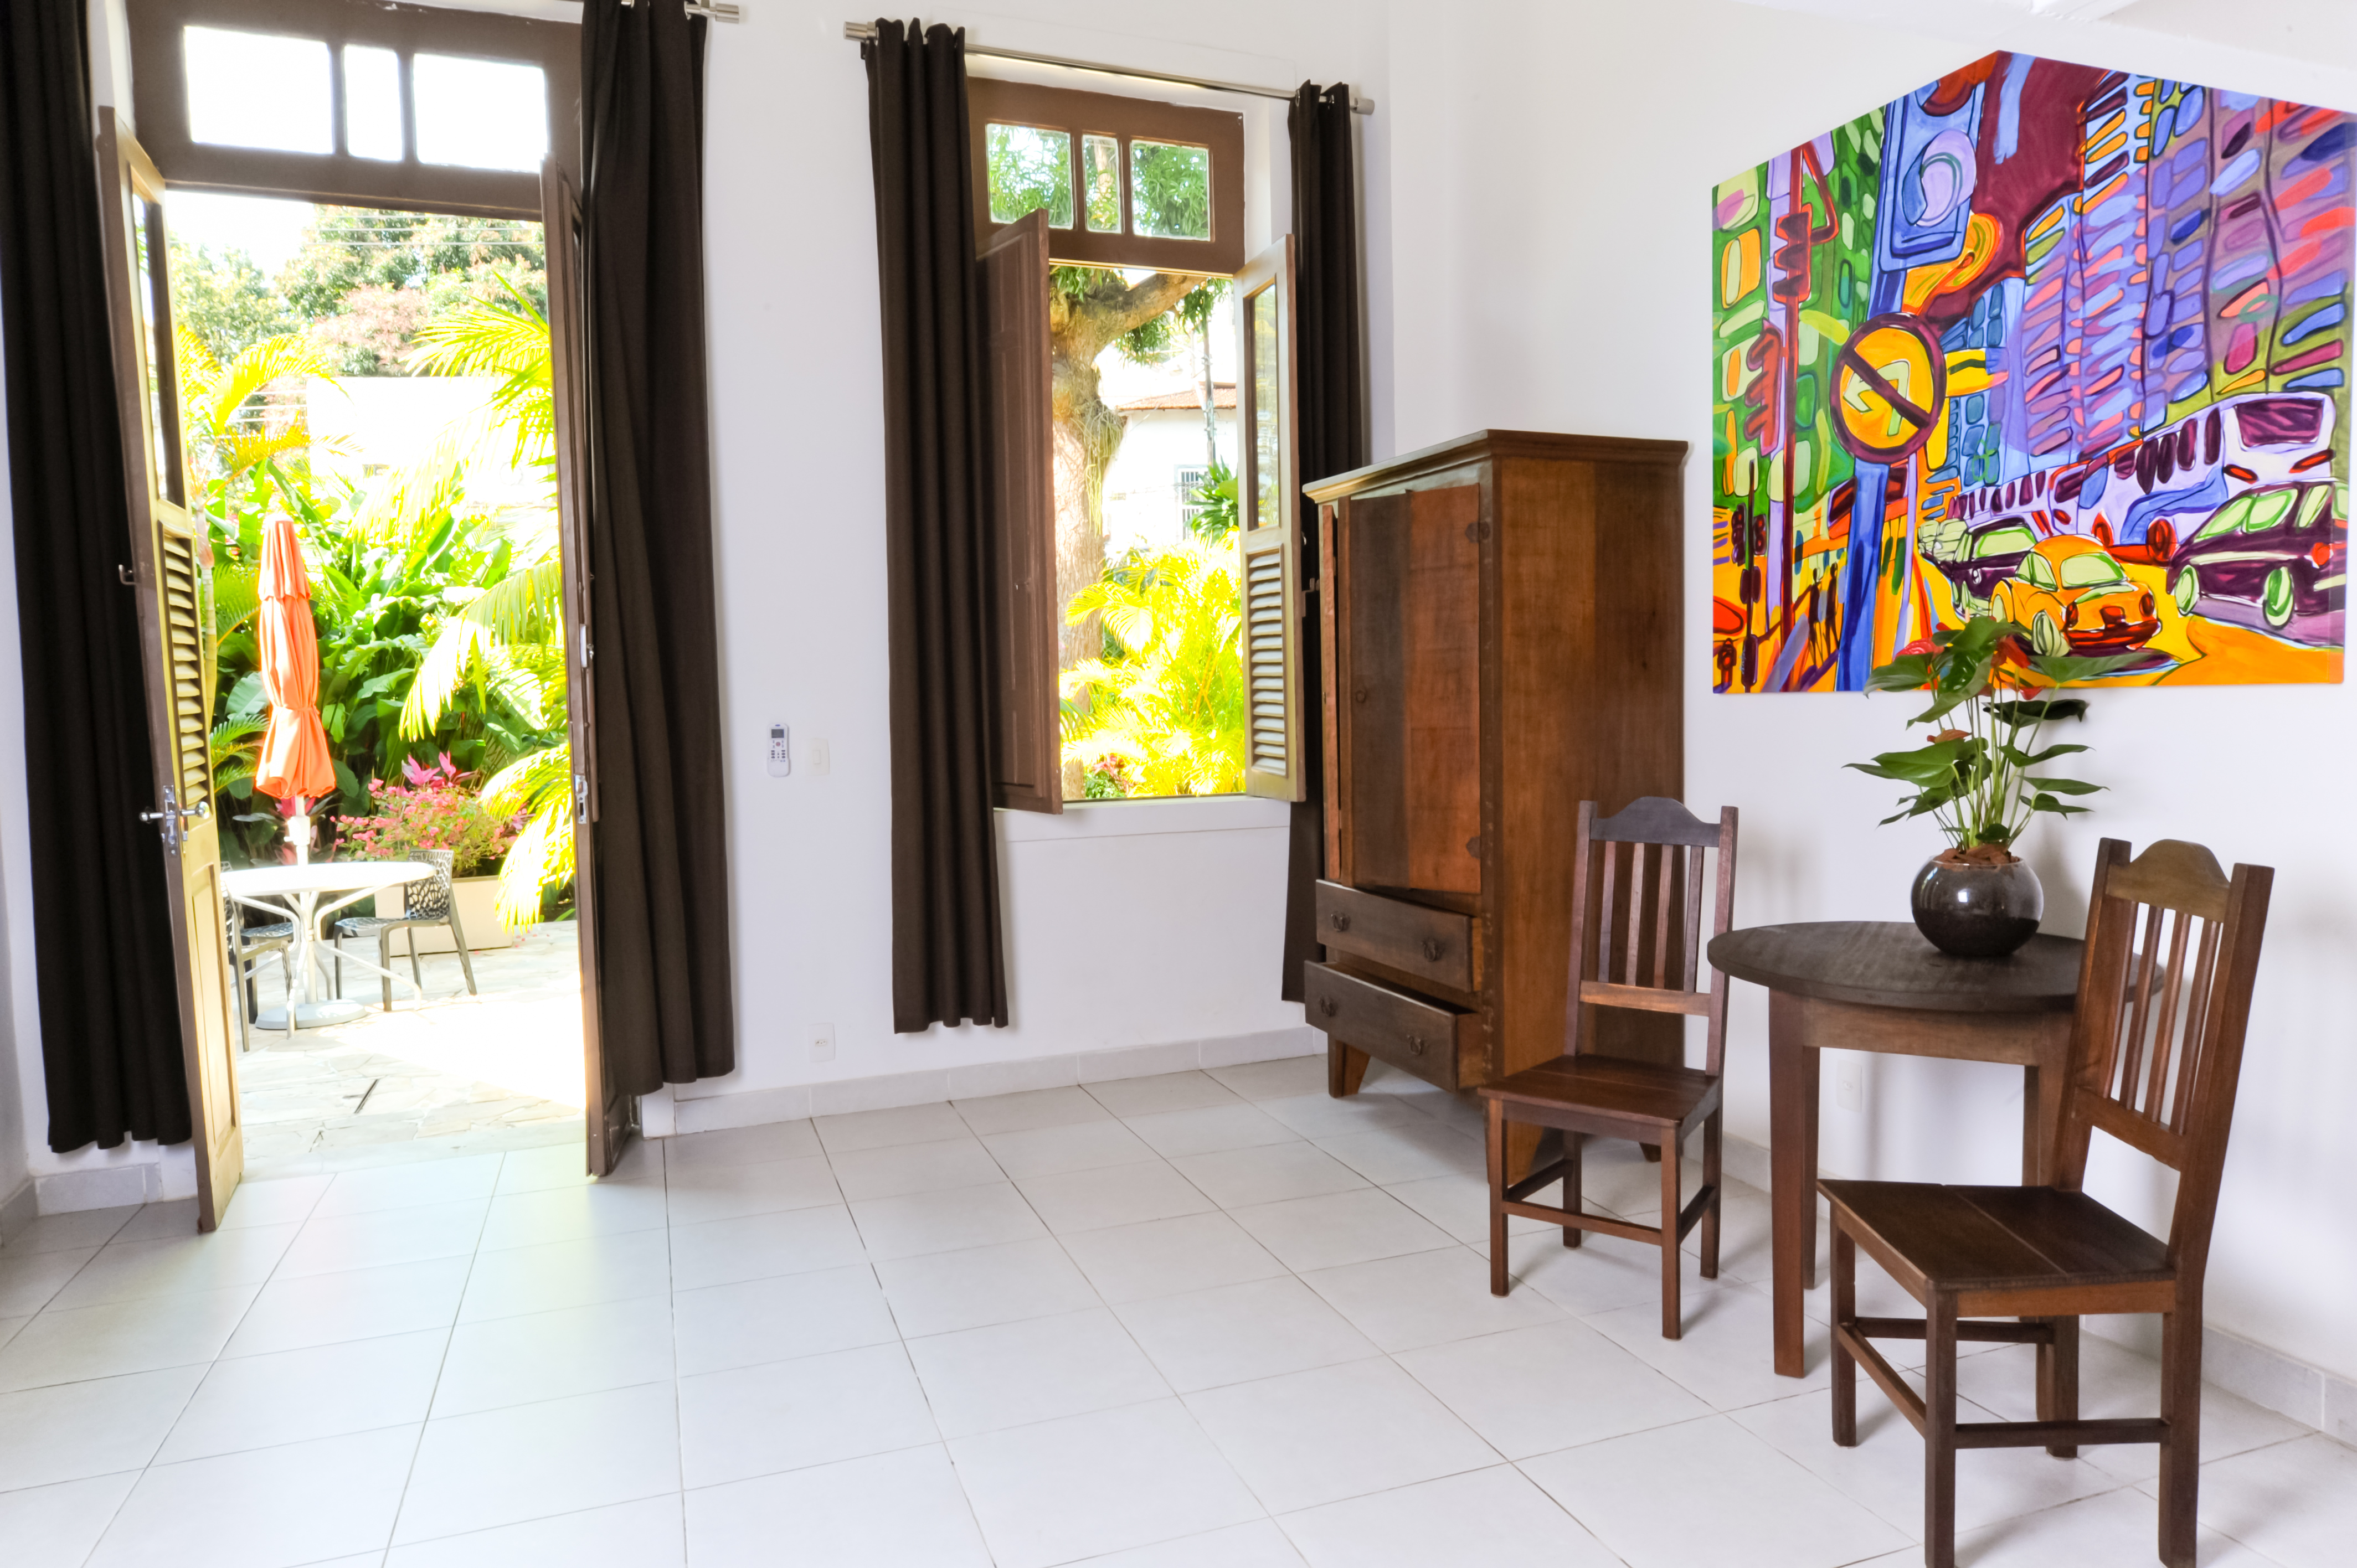 Bed and Breakfast in Rio de Janeiro - Casa Cool Beans